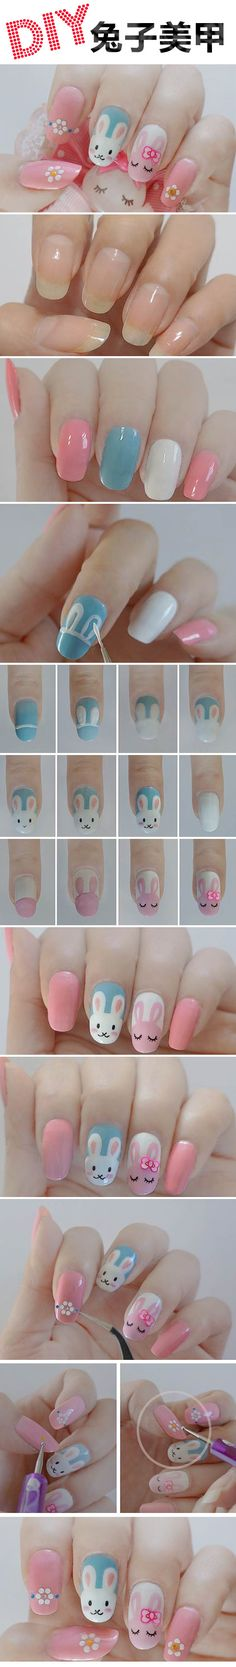 Diy-cute-rabbit-nail-art_large